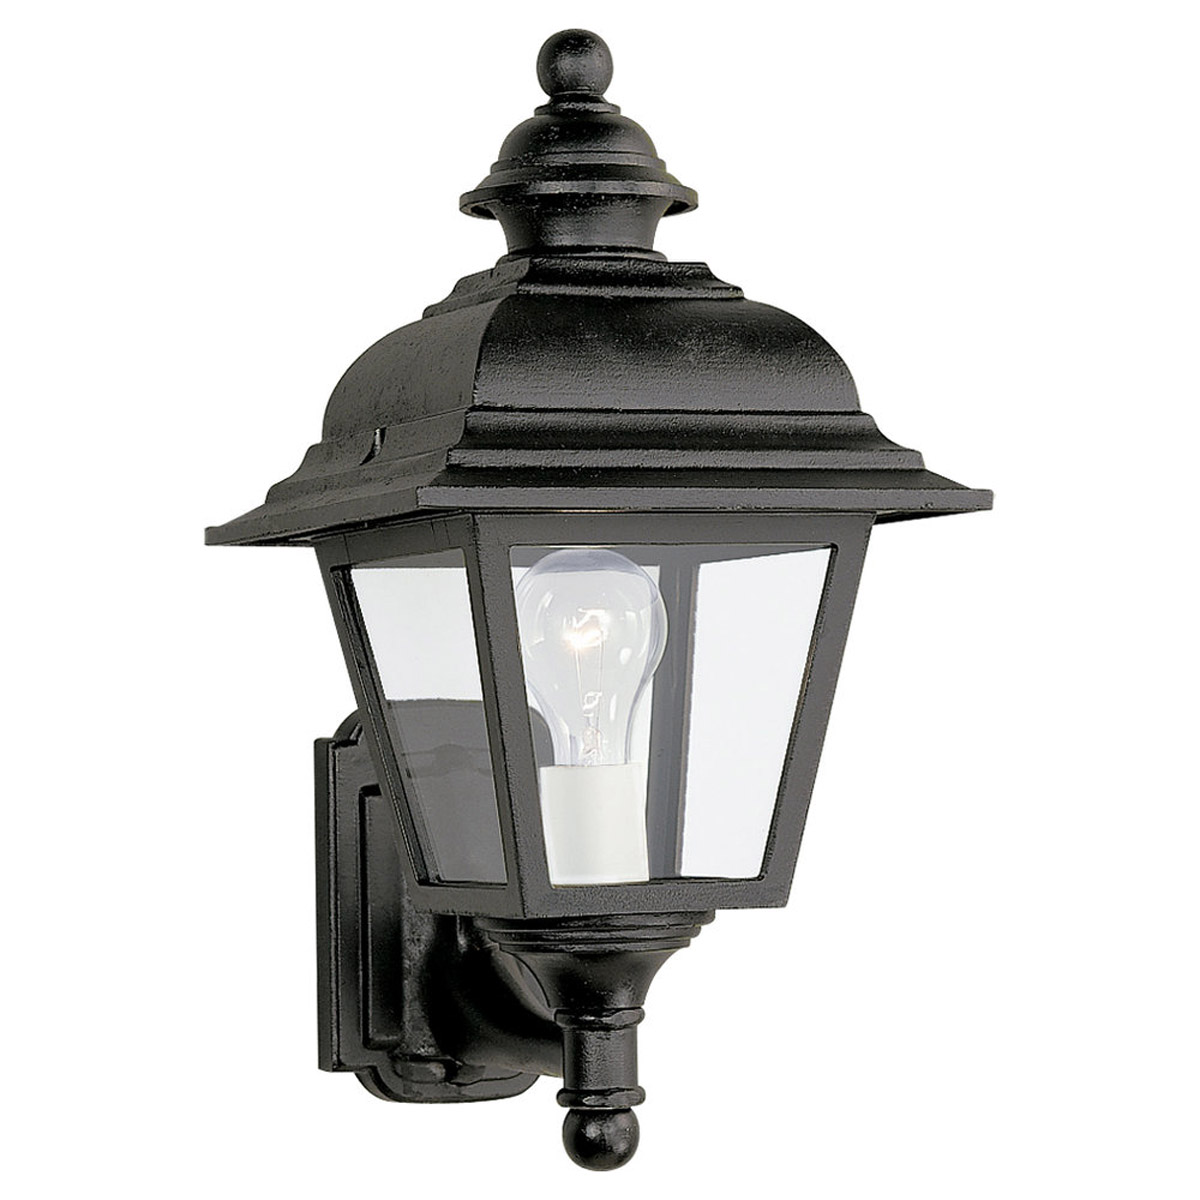 Sea Gull Lighting Bancroft 1 Light Outdoor Wall Lantern in Black 8815-12 photo